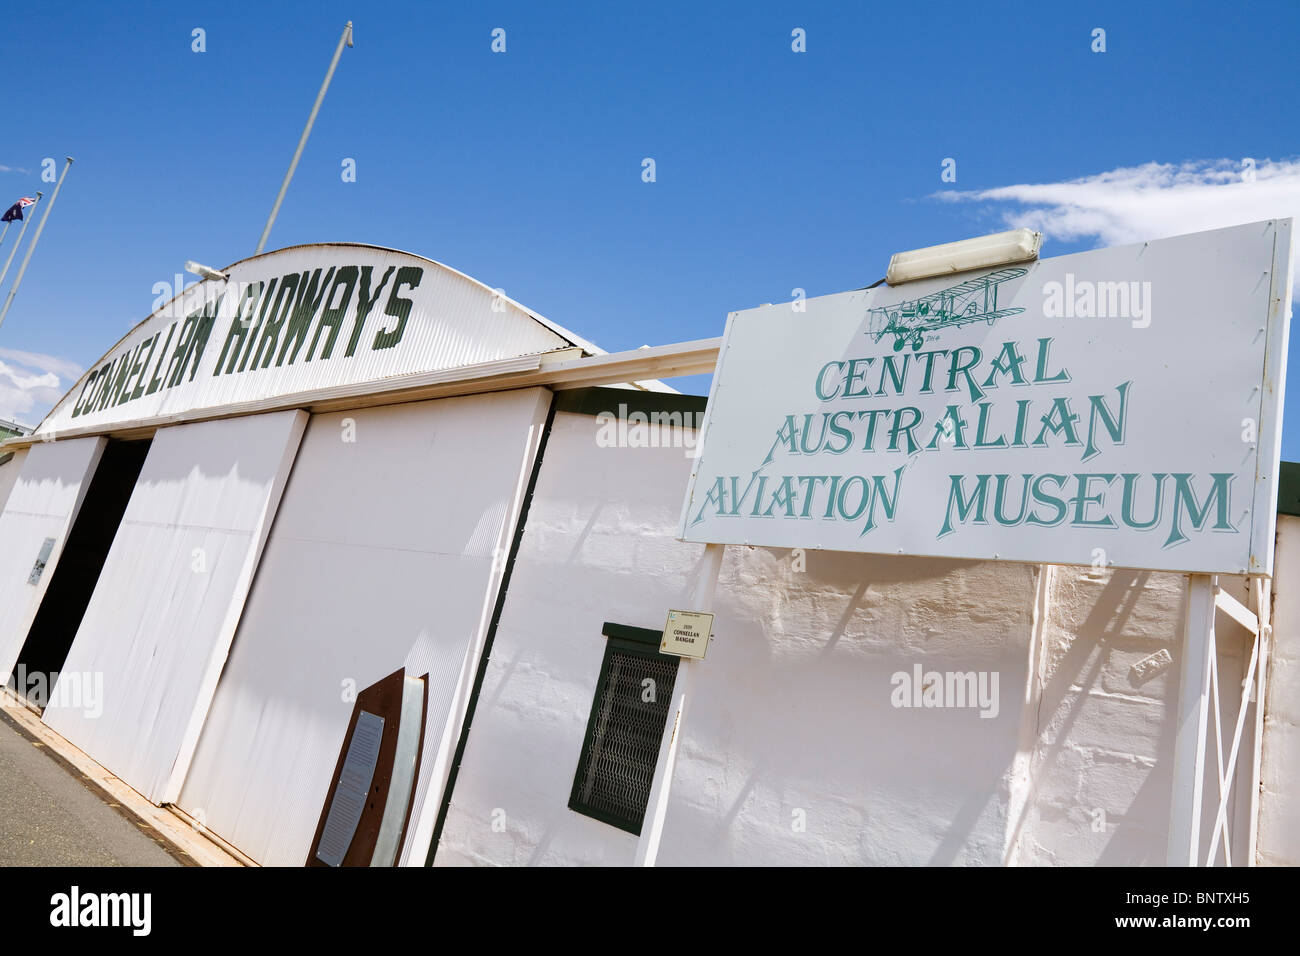 Central Australian Aviation Museum. Alice Springs, Northern Territory, AUSTRALIA. - Stock Image